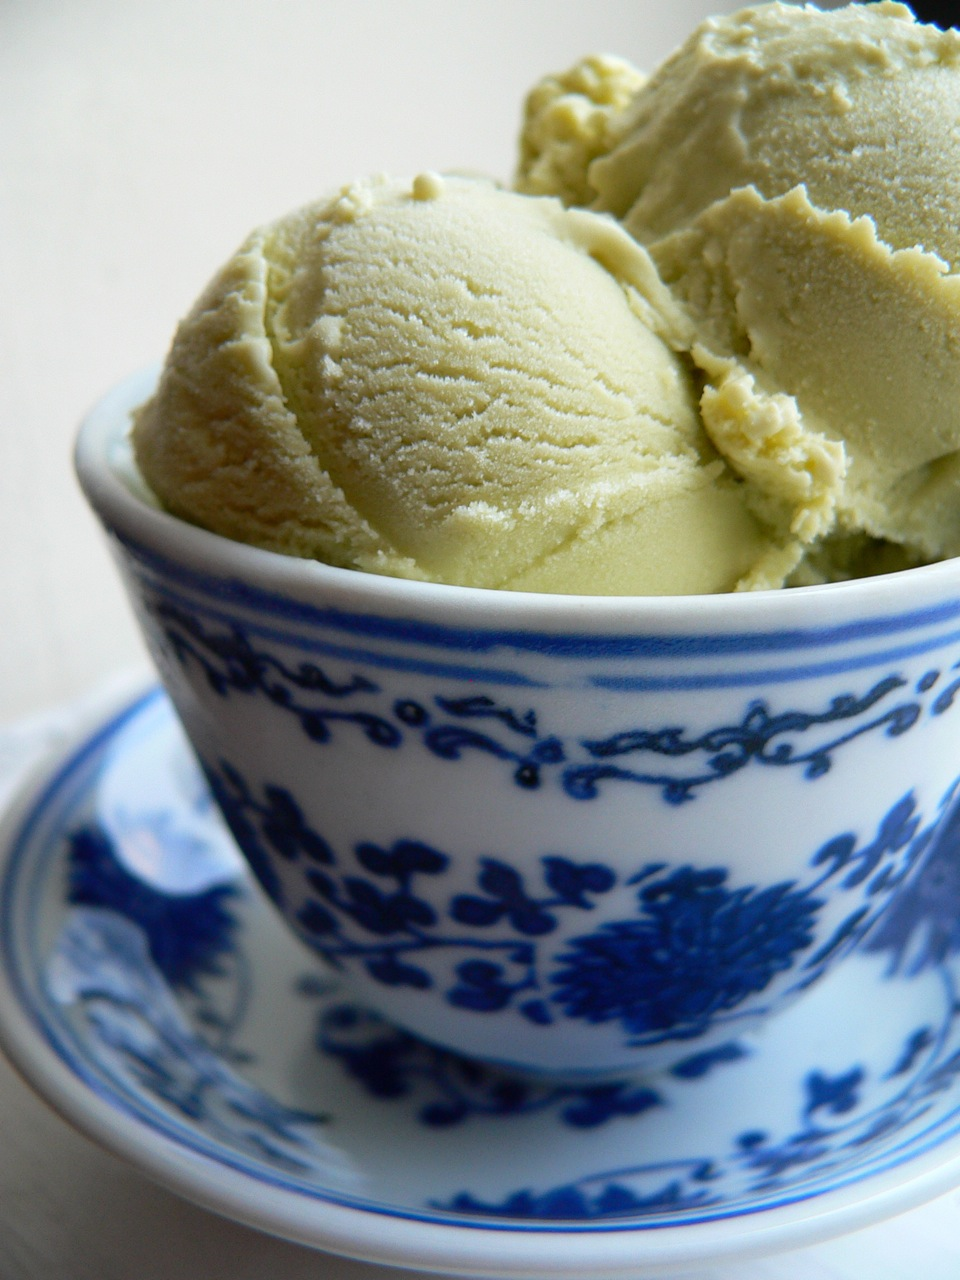 Green Tea Ice Cream | The Frozen Fix: Ice cream, sorbet ...